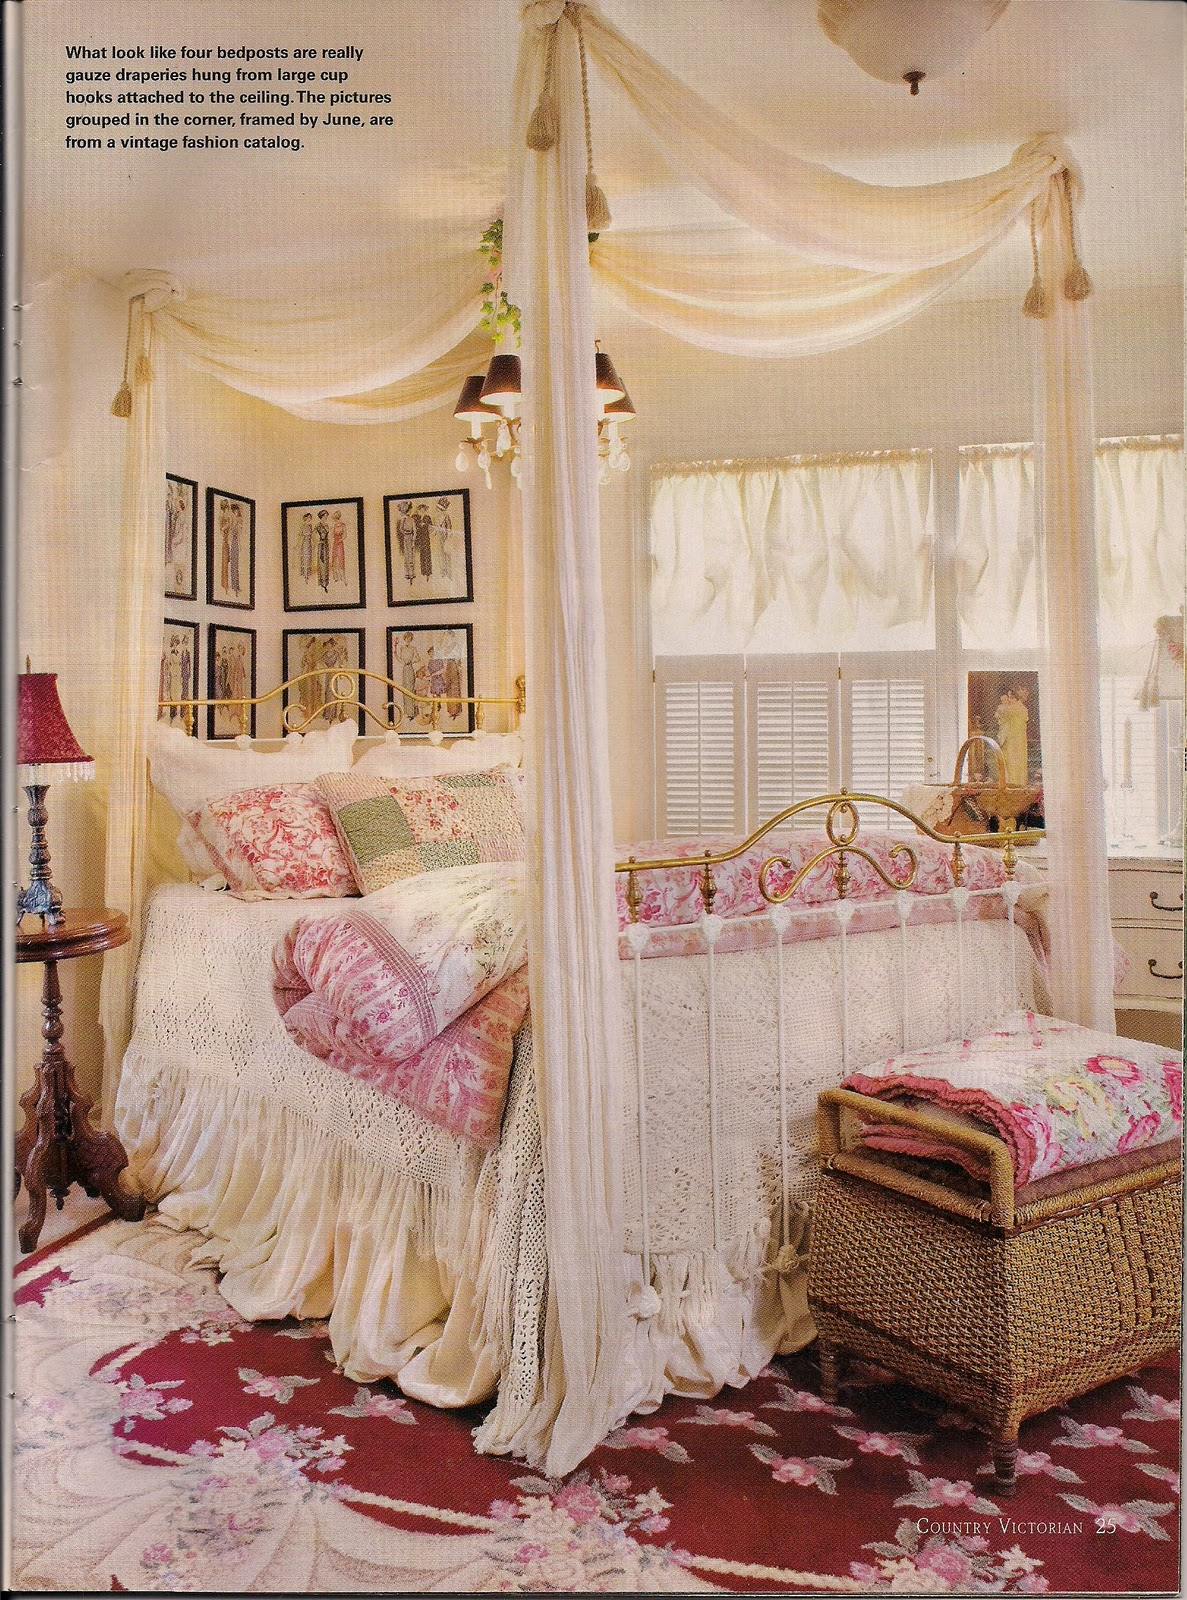 Dreaming of beautiful beds Victorian bedrooms